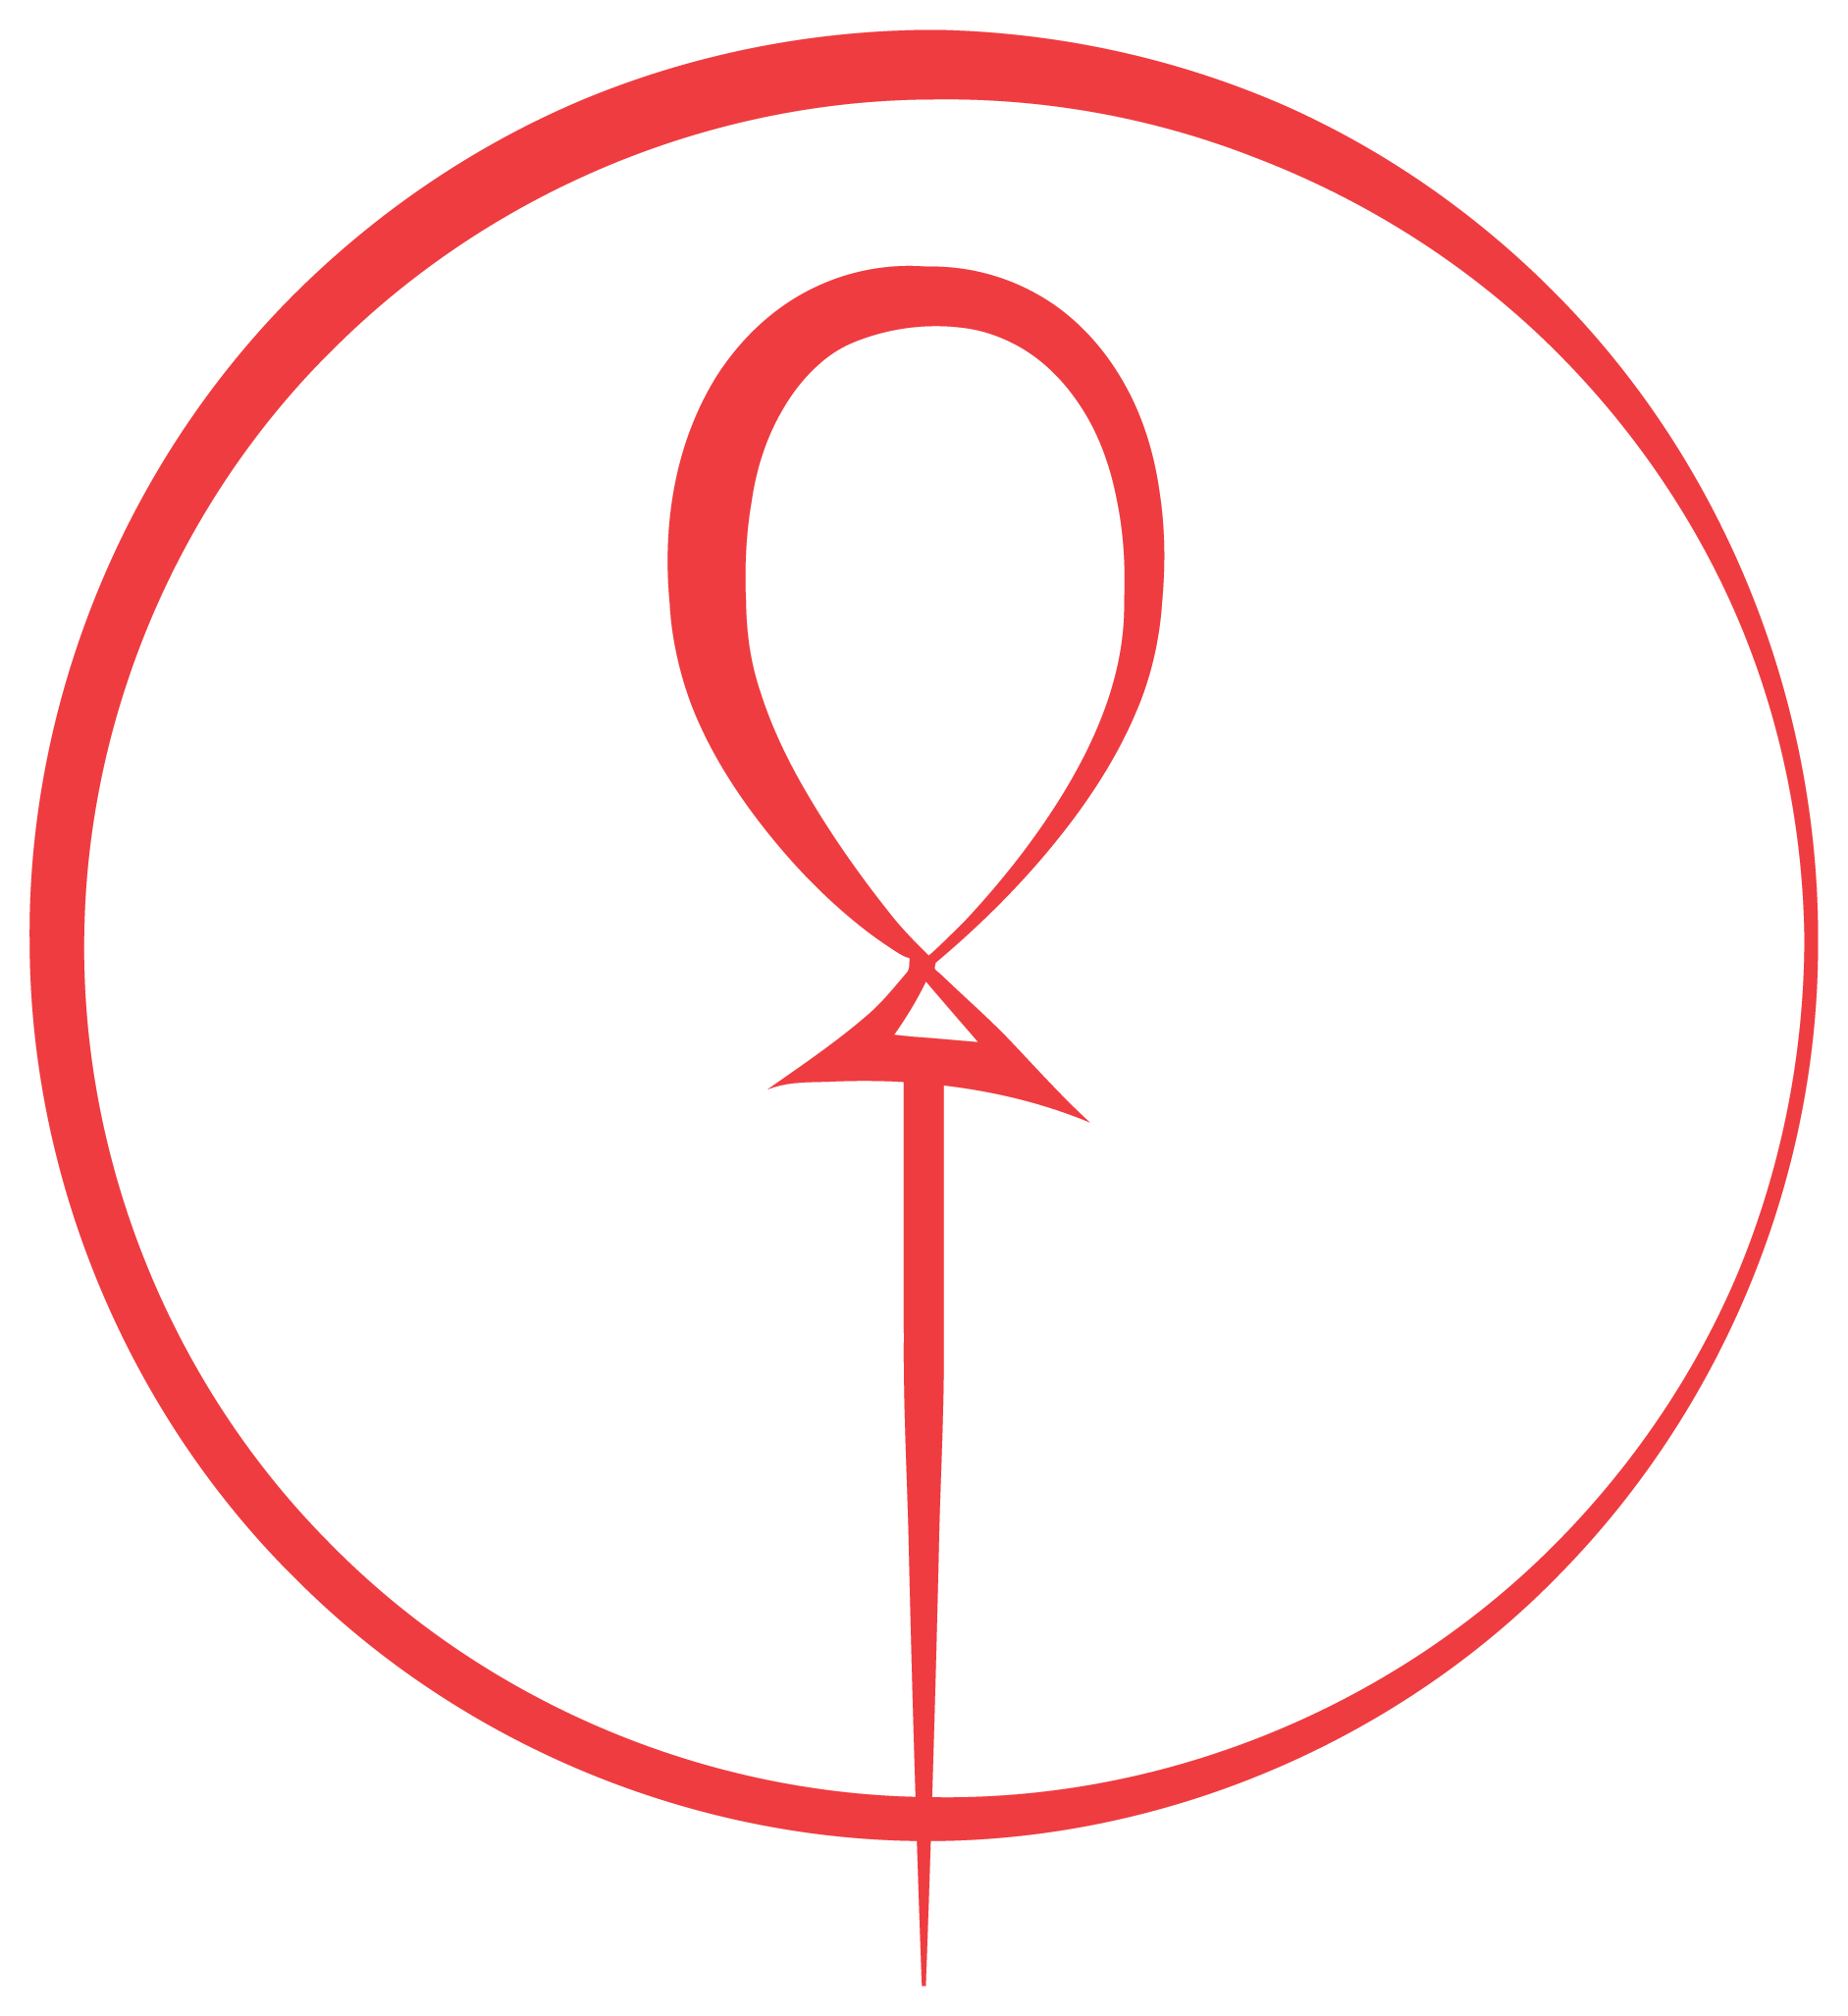 Red Balloon Security logo